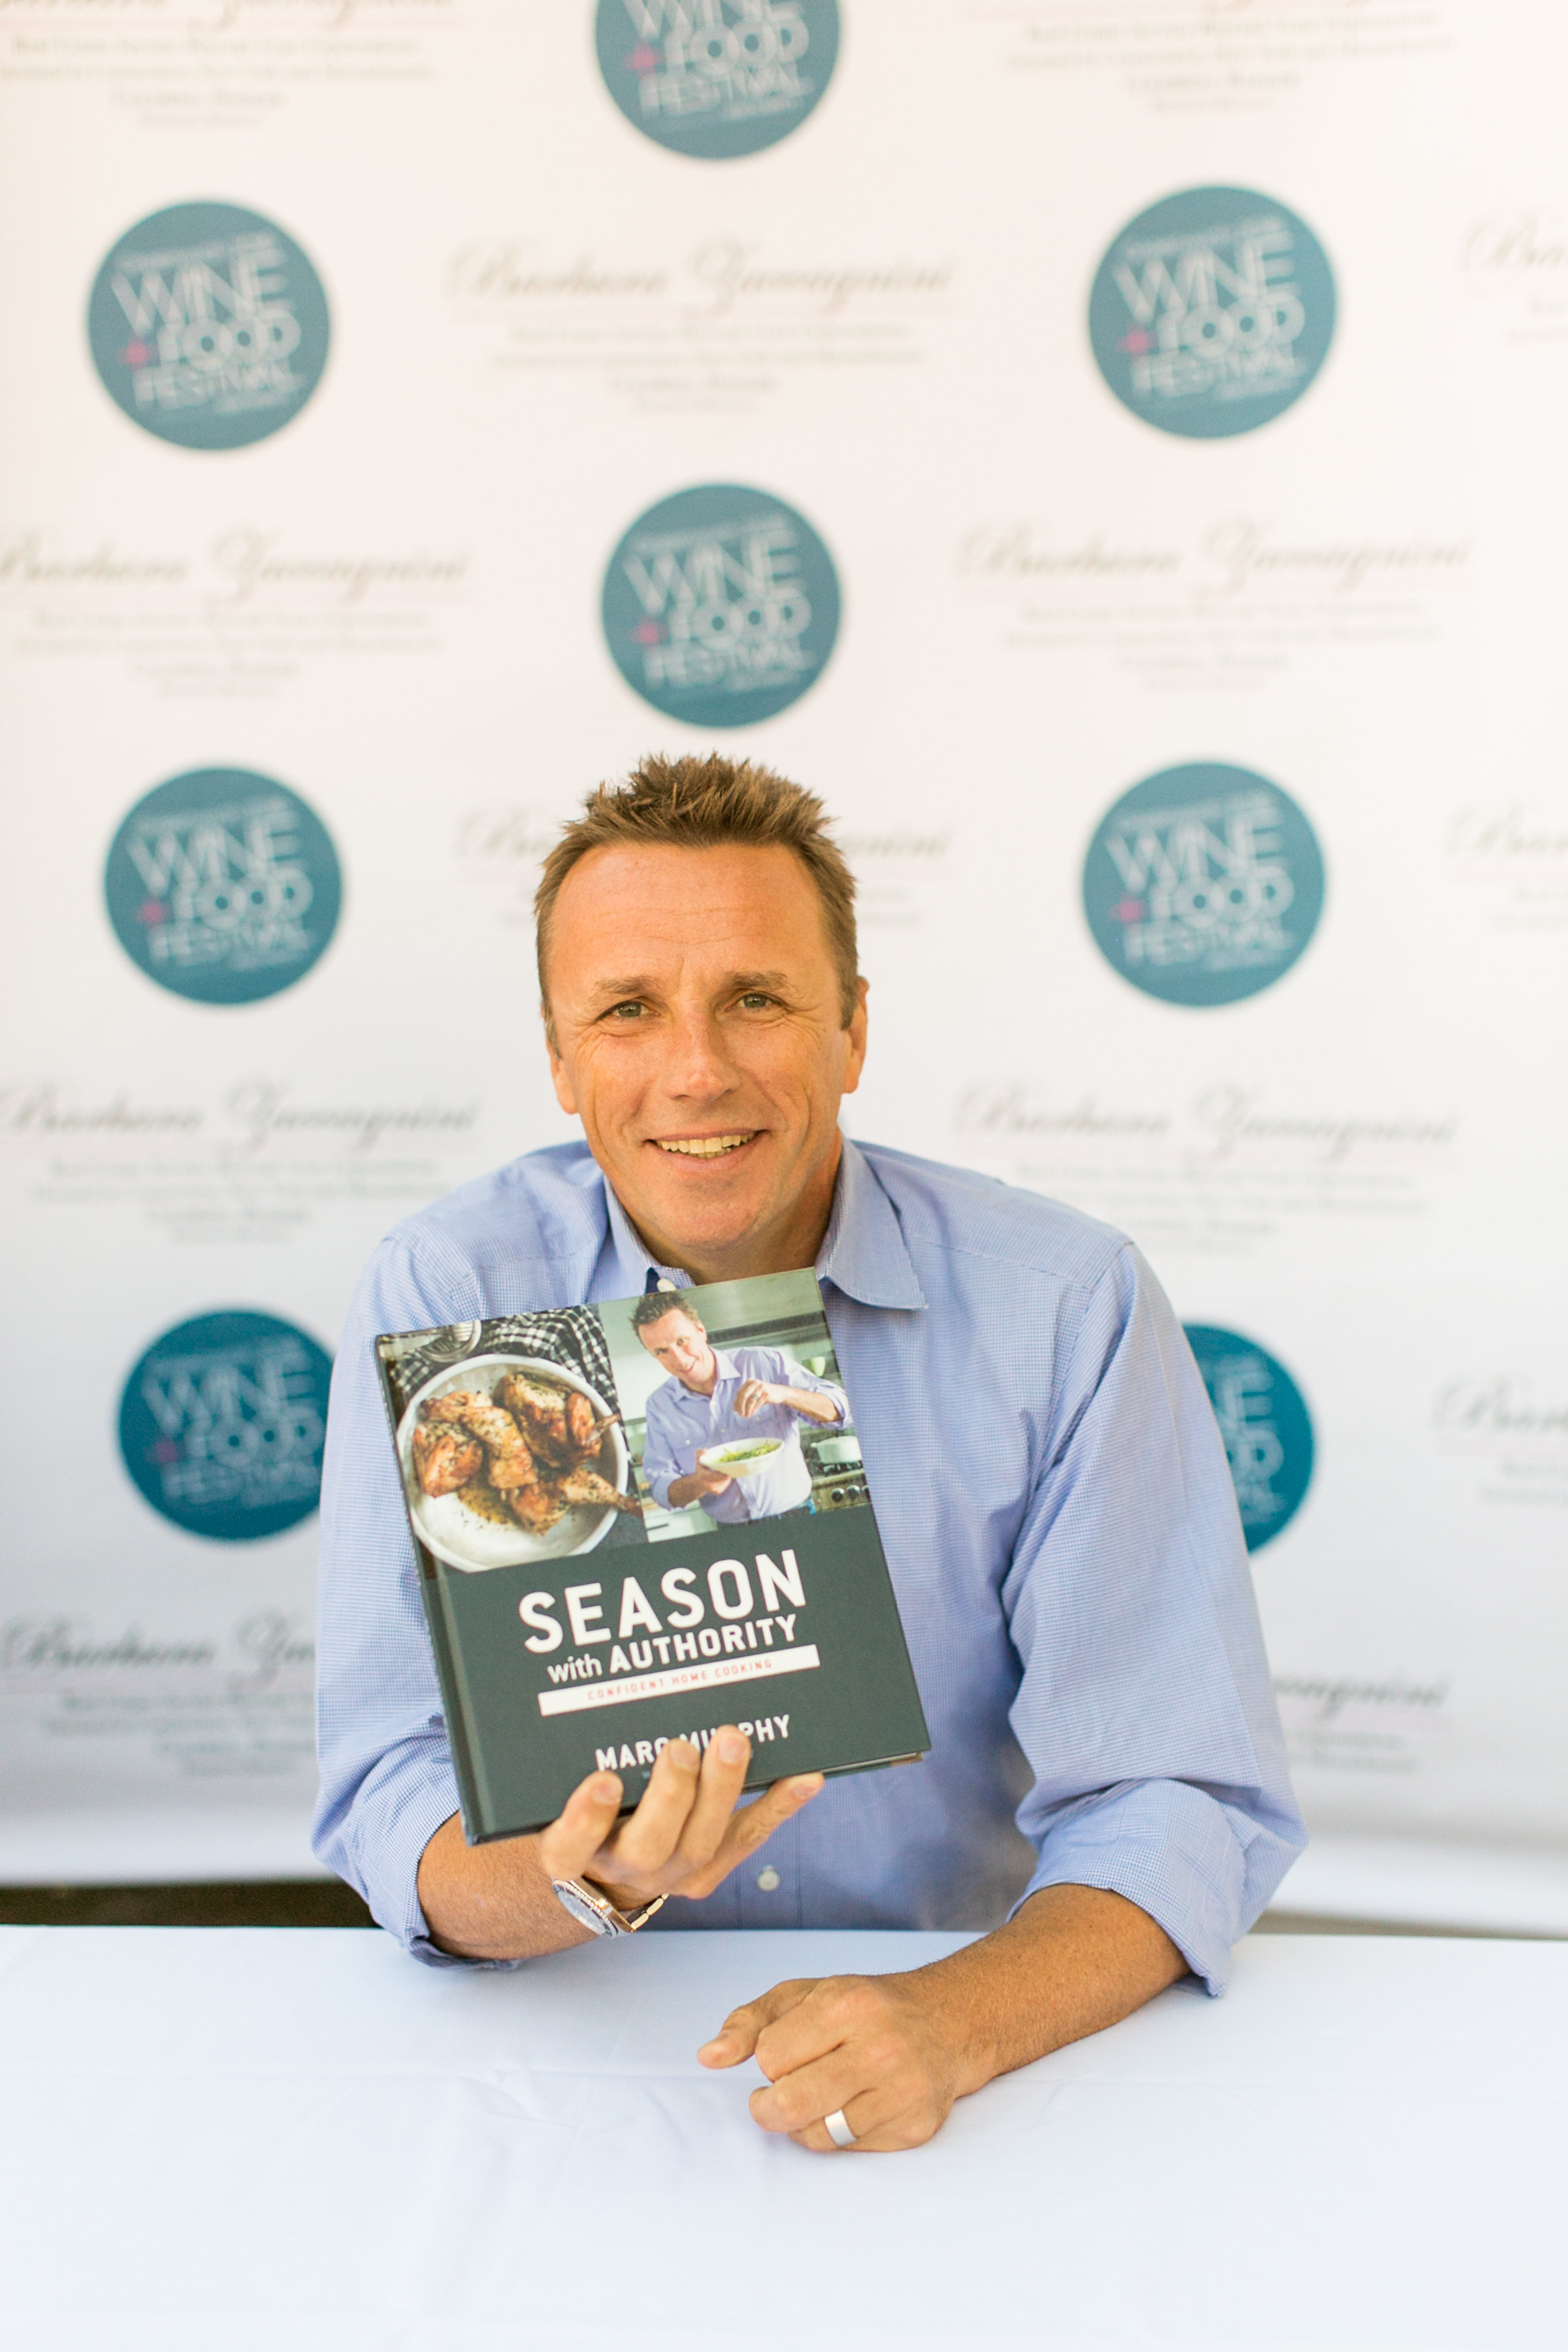 Marc Murphy and his new book Season With Authority at the Greenwich Wine and Food Festival 2016 | CTEatsOut.com